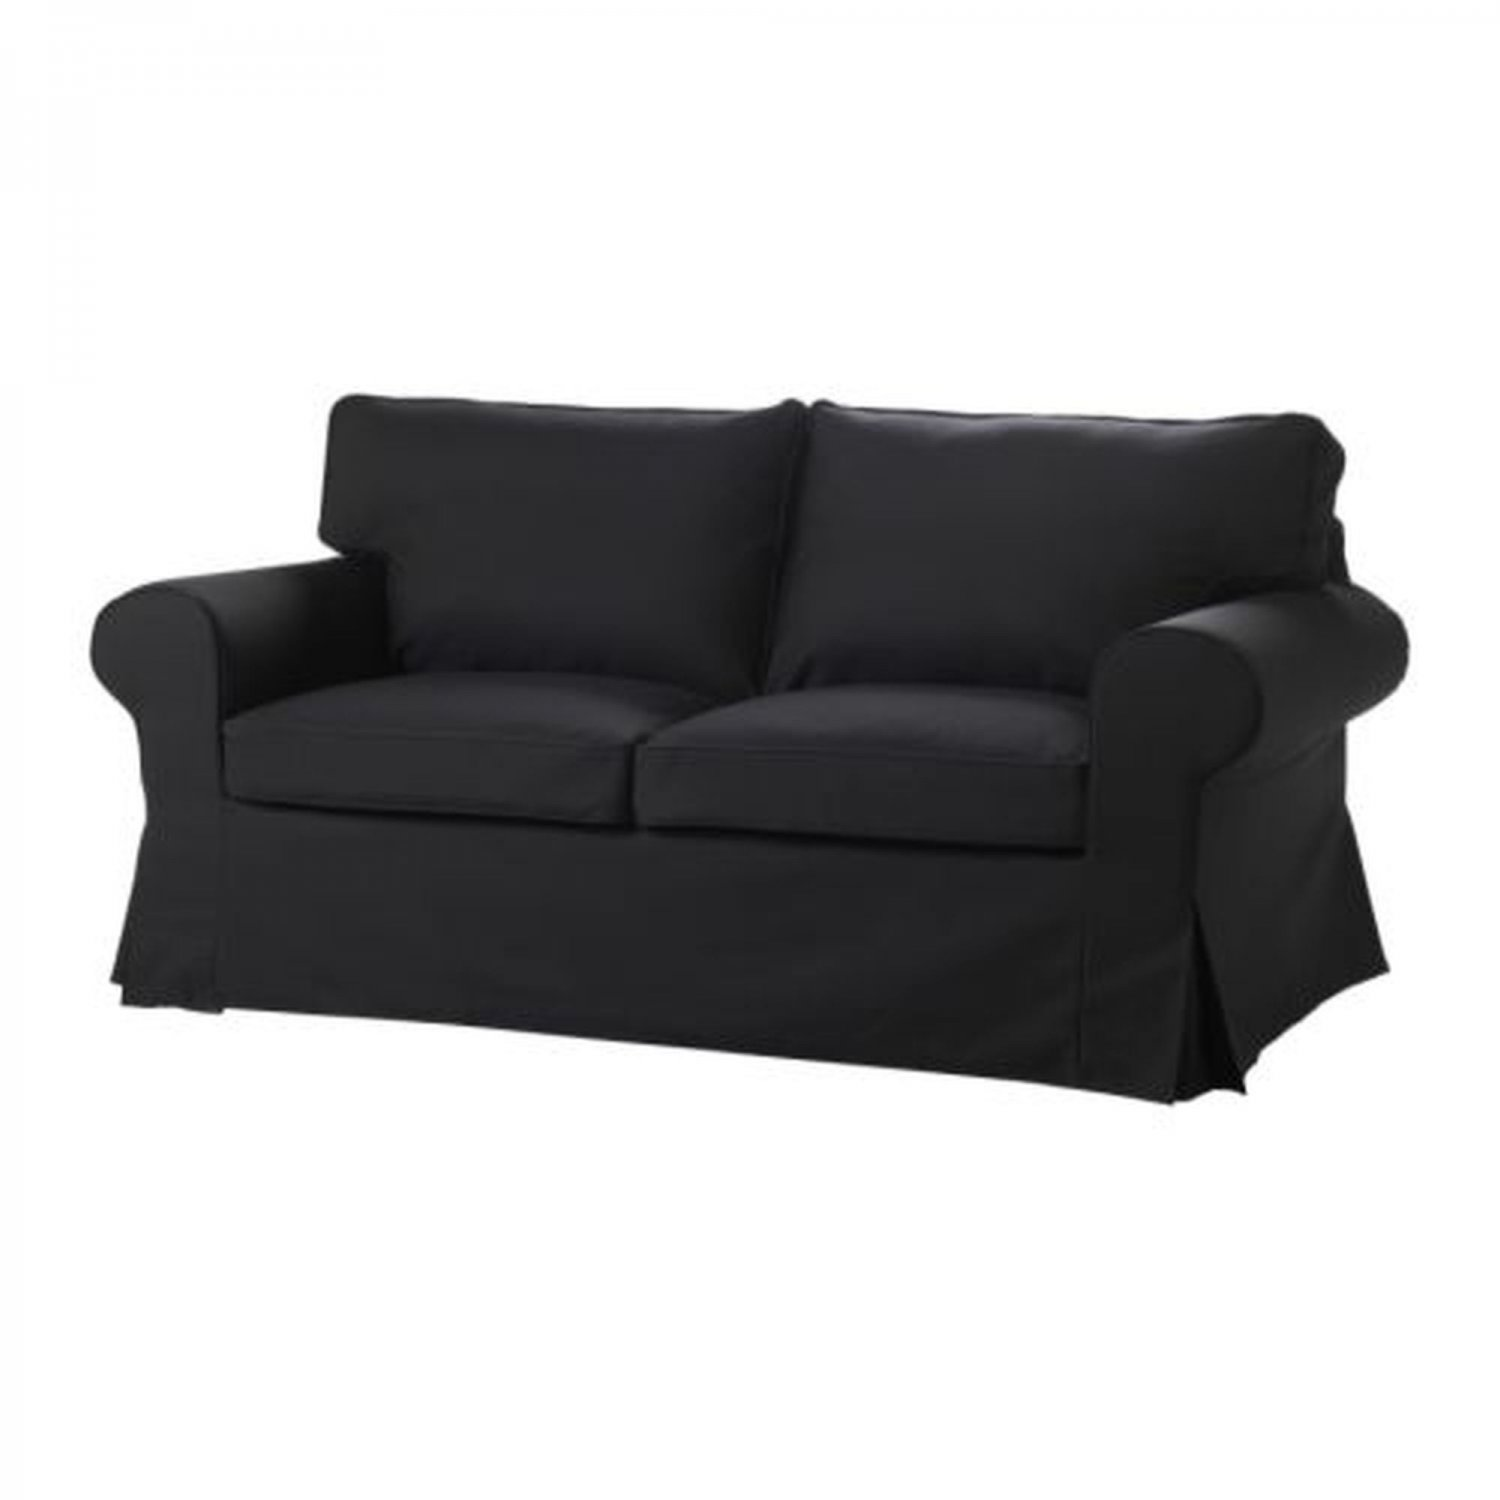 IKEA EKTORP Sofa Bed SLIPCOVER Sofabed Cover IDEMO BLACK  : 548a05c46c70854622b from rock-paper-scissors.ecrater.co.uk size 1500 x 1500 jpeg 63kB